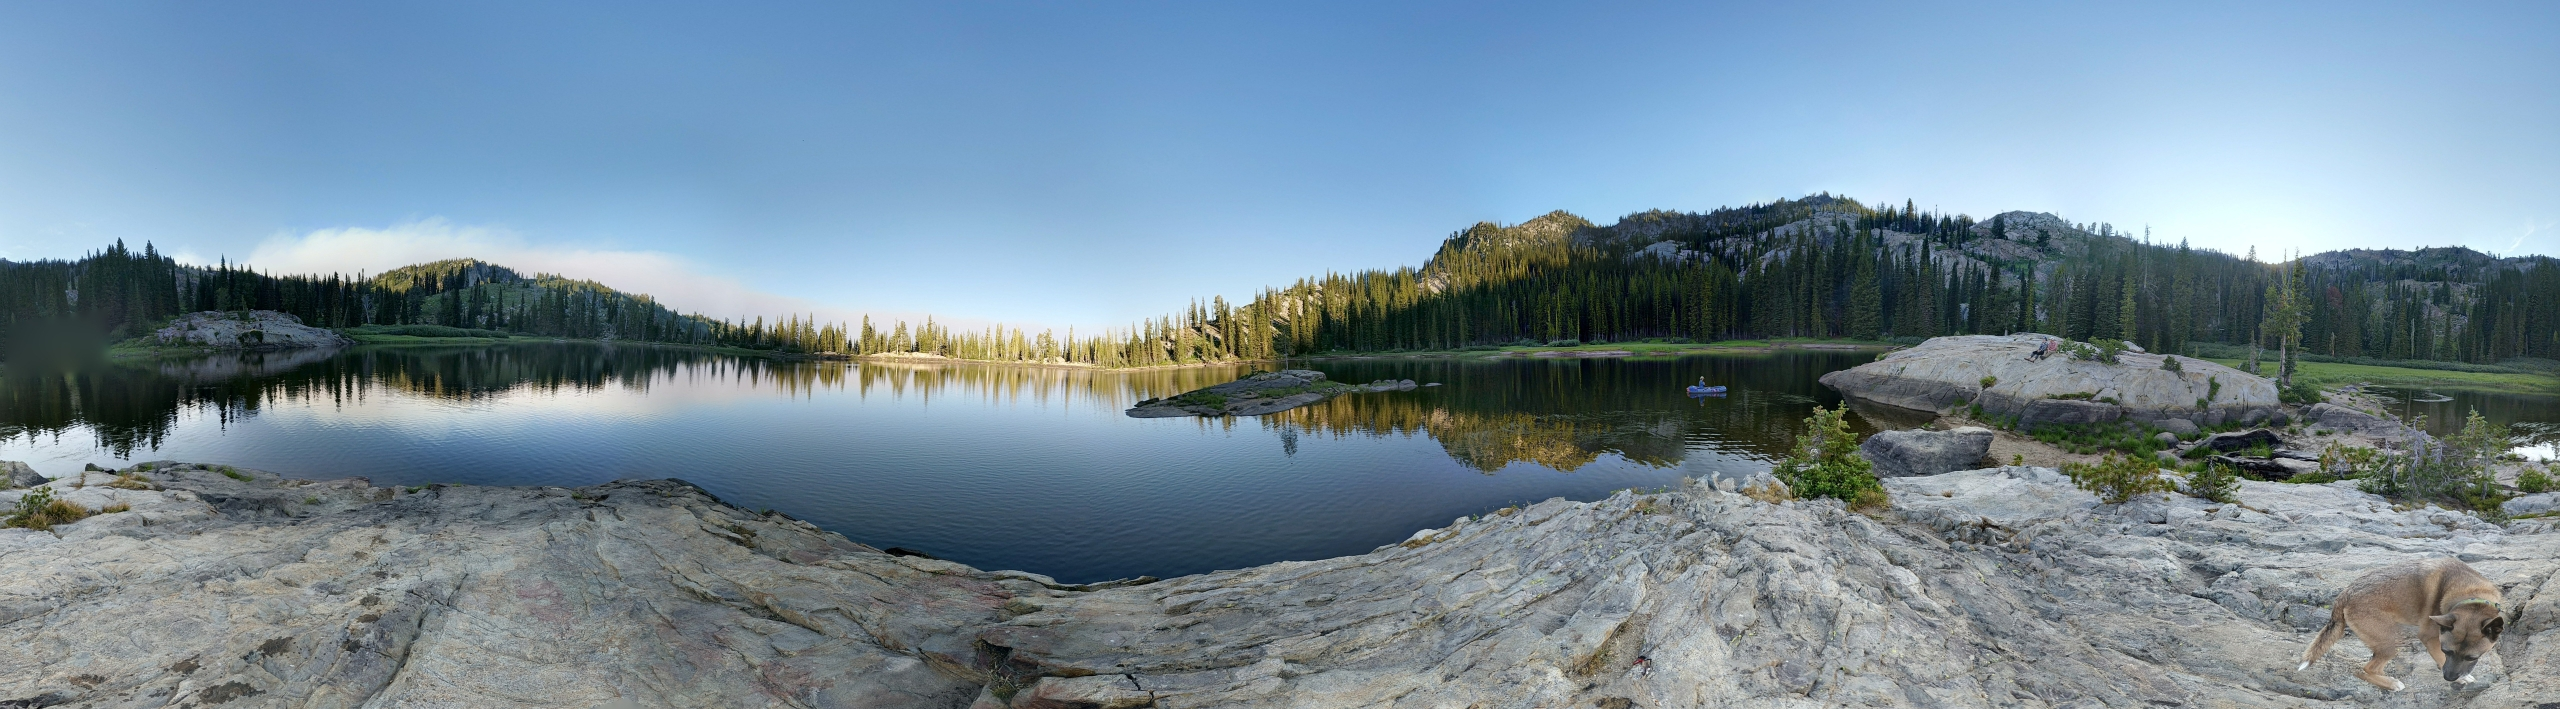 Blue Lake near Cascade Idaho at sunset